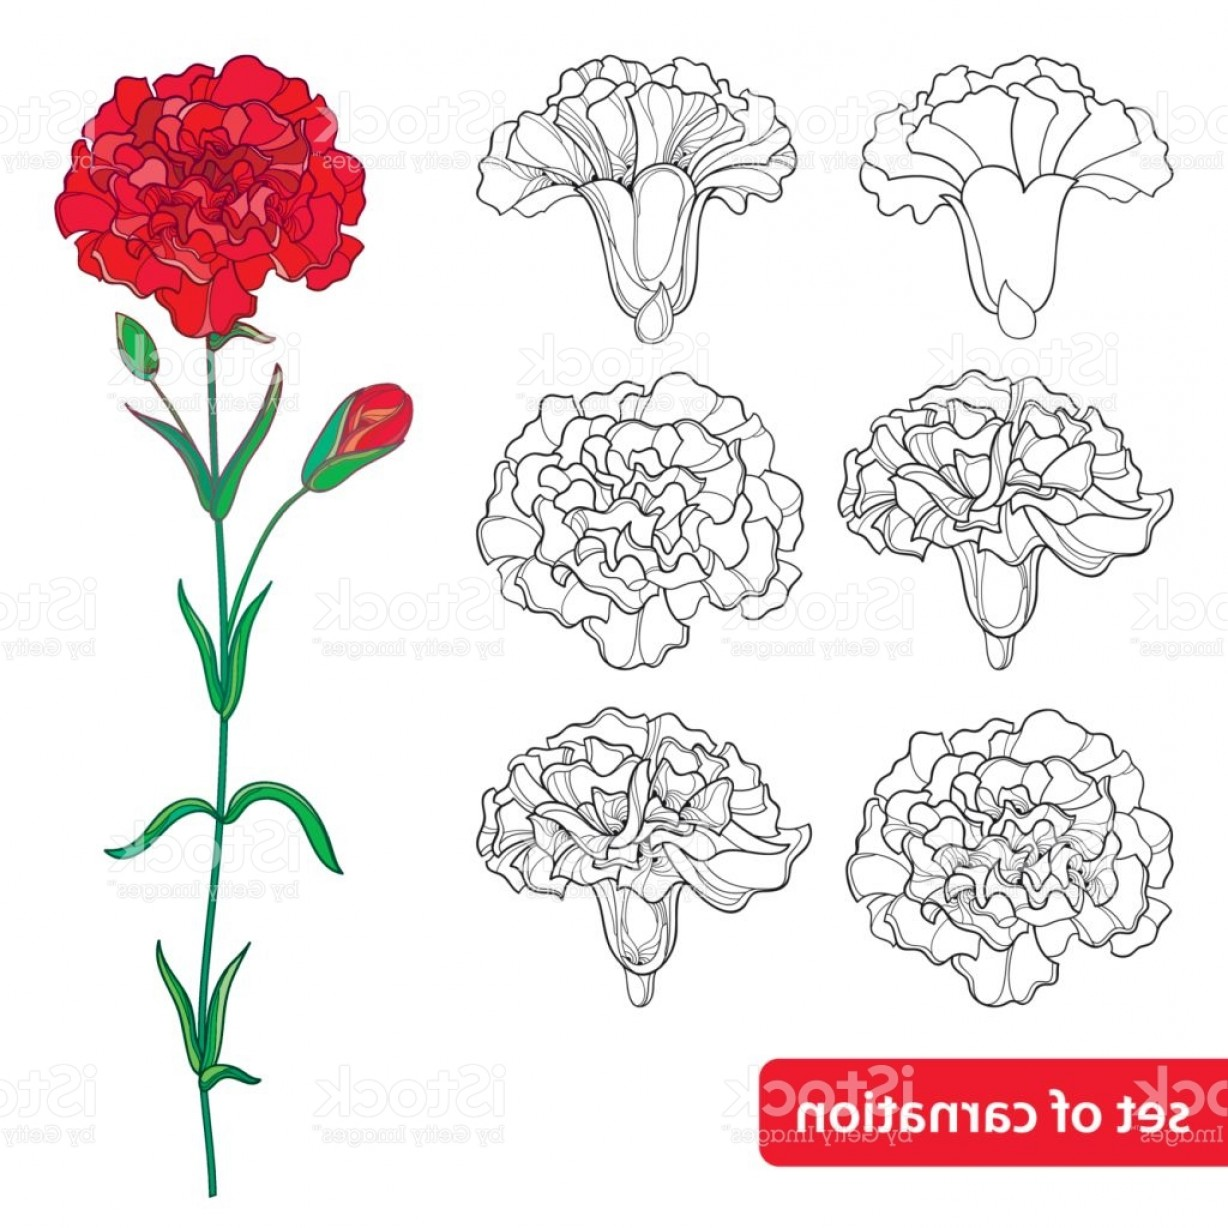 Bud Vector: Set With Carnation Flower Bud And Leaves Isolated On White Background Gm